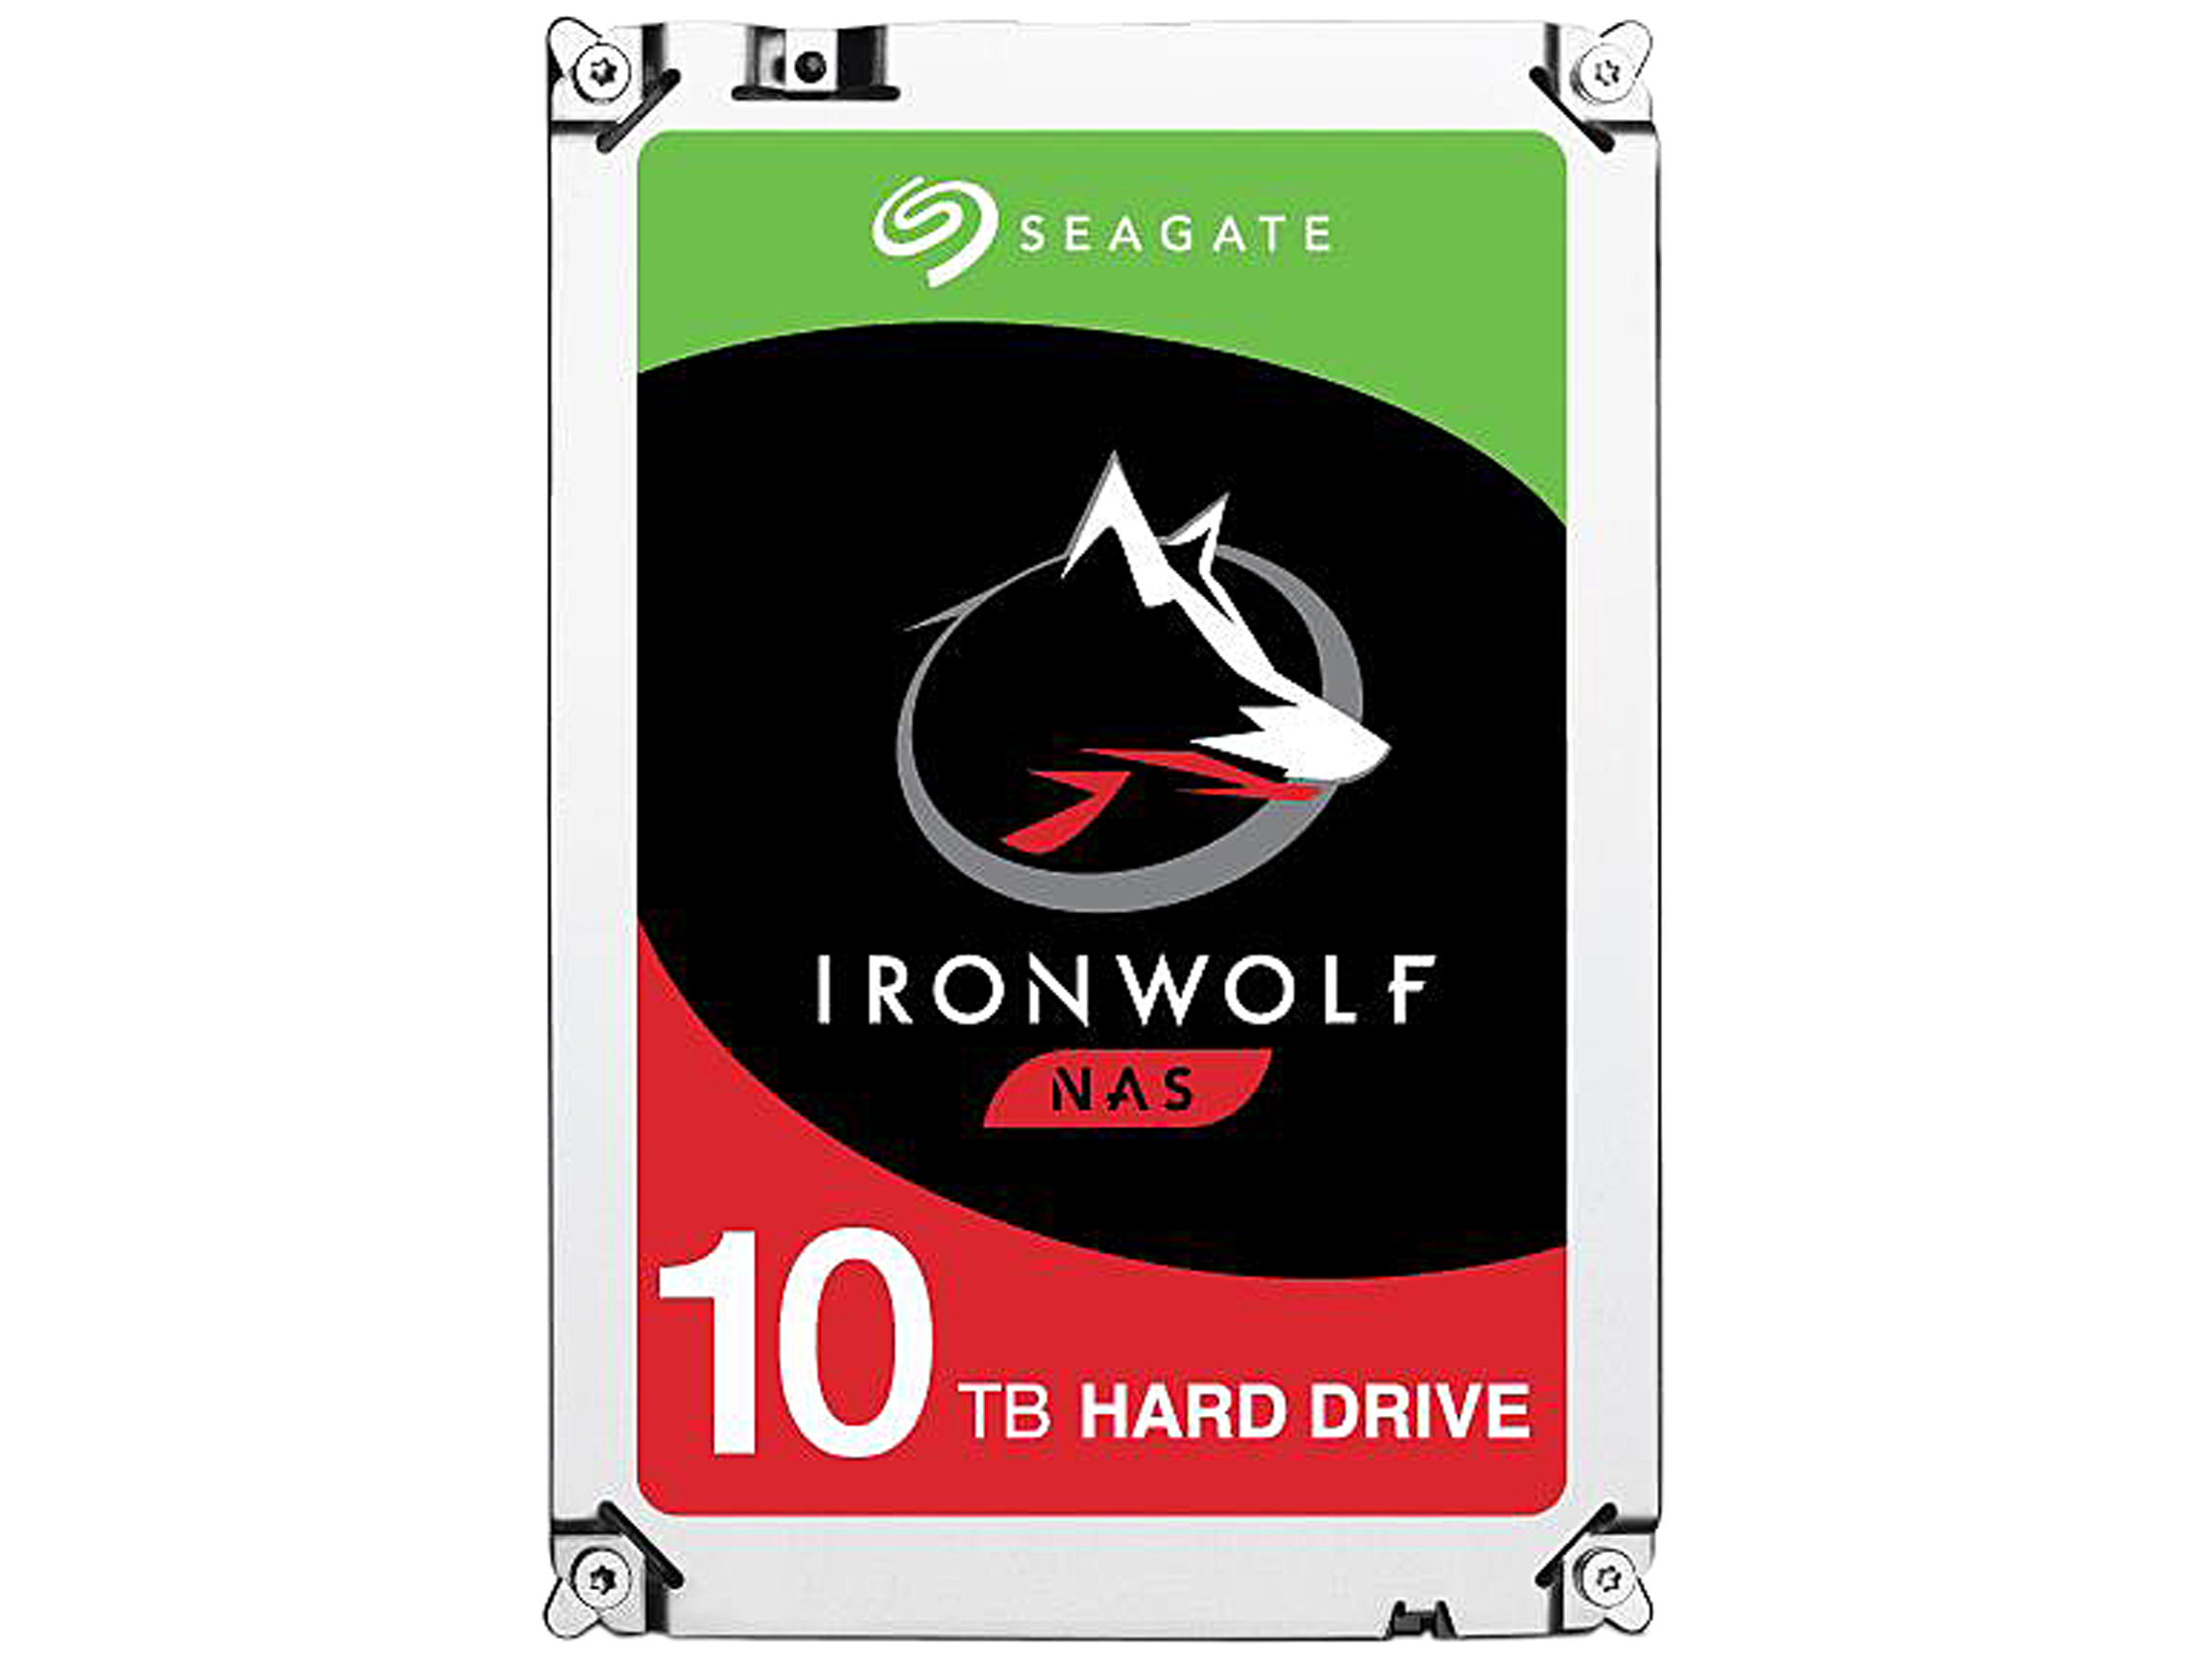 Seagate Ironwolf 10tb Nas Hard Drive 7200 Rpm 256mb Cache Sata 60gb Laptop On A Circuit Board Clock Awesome Combination S 35 Internal St10000vn0004